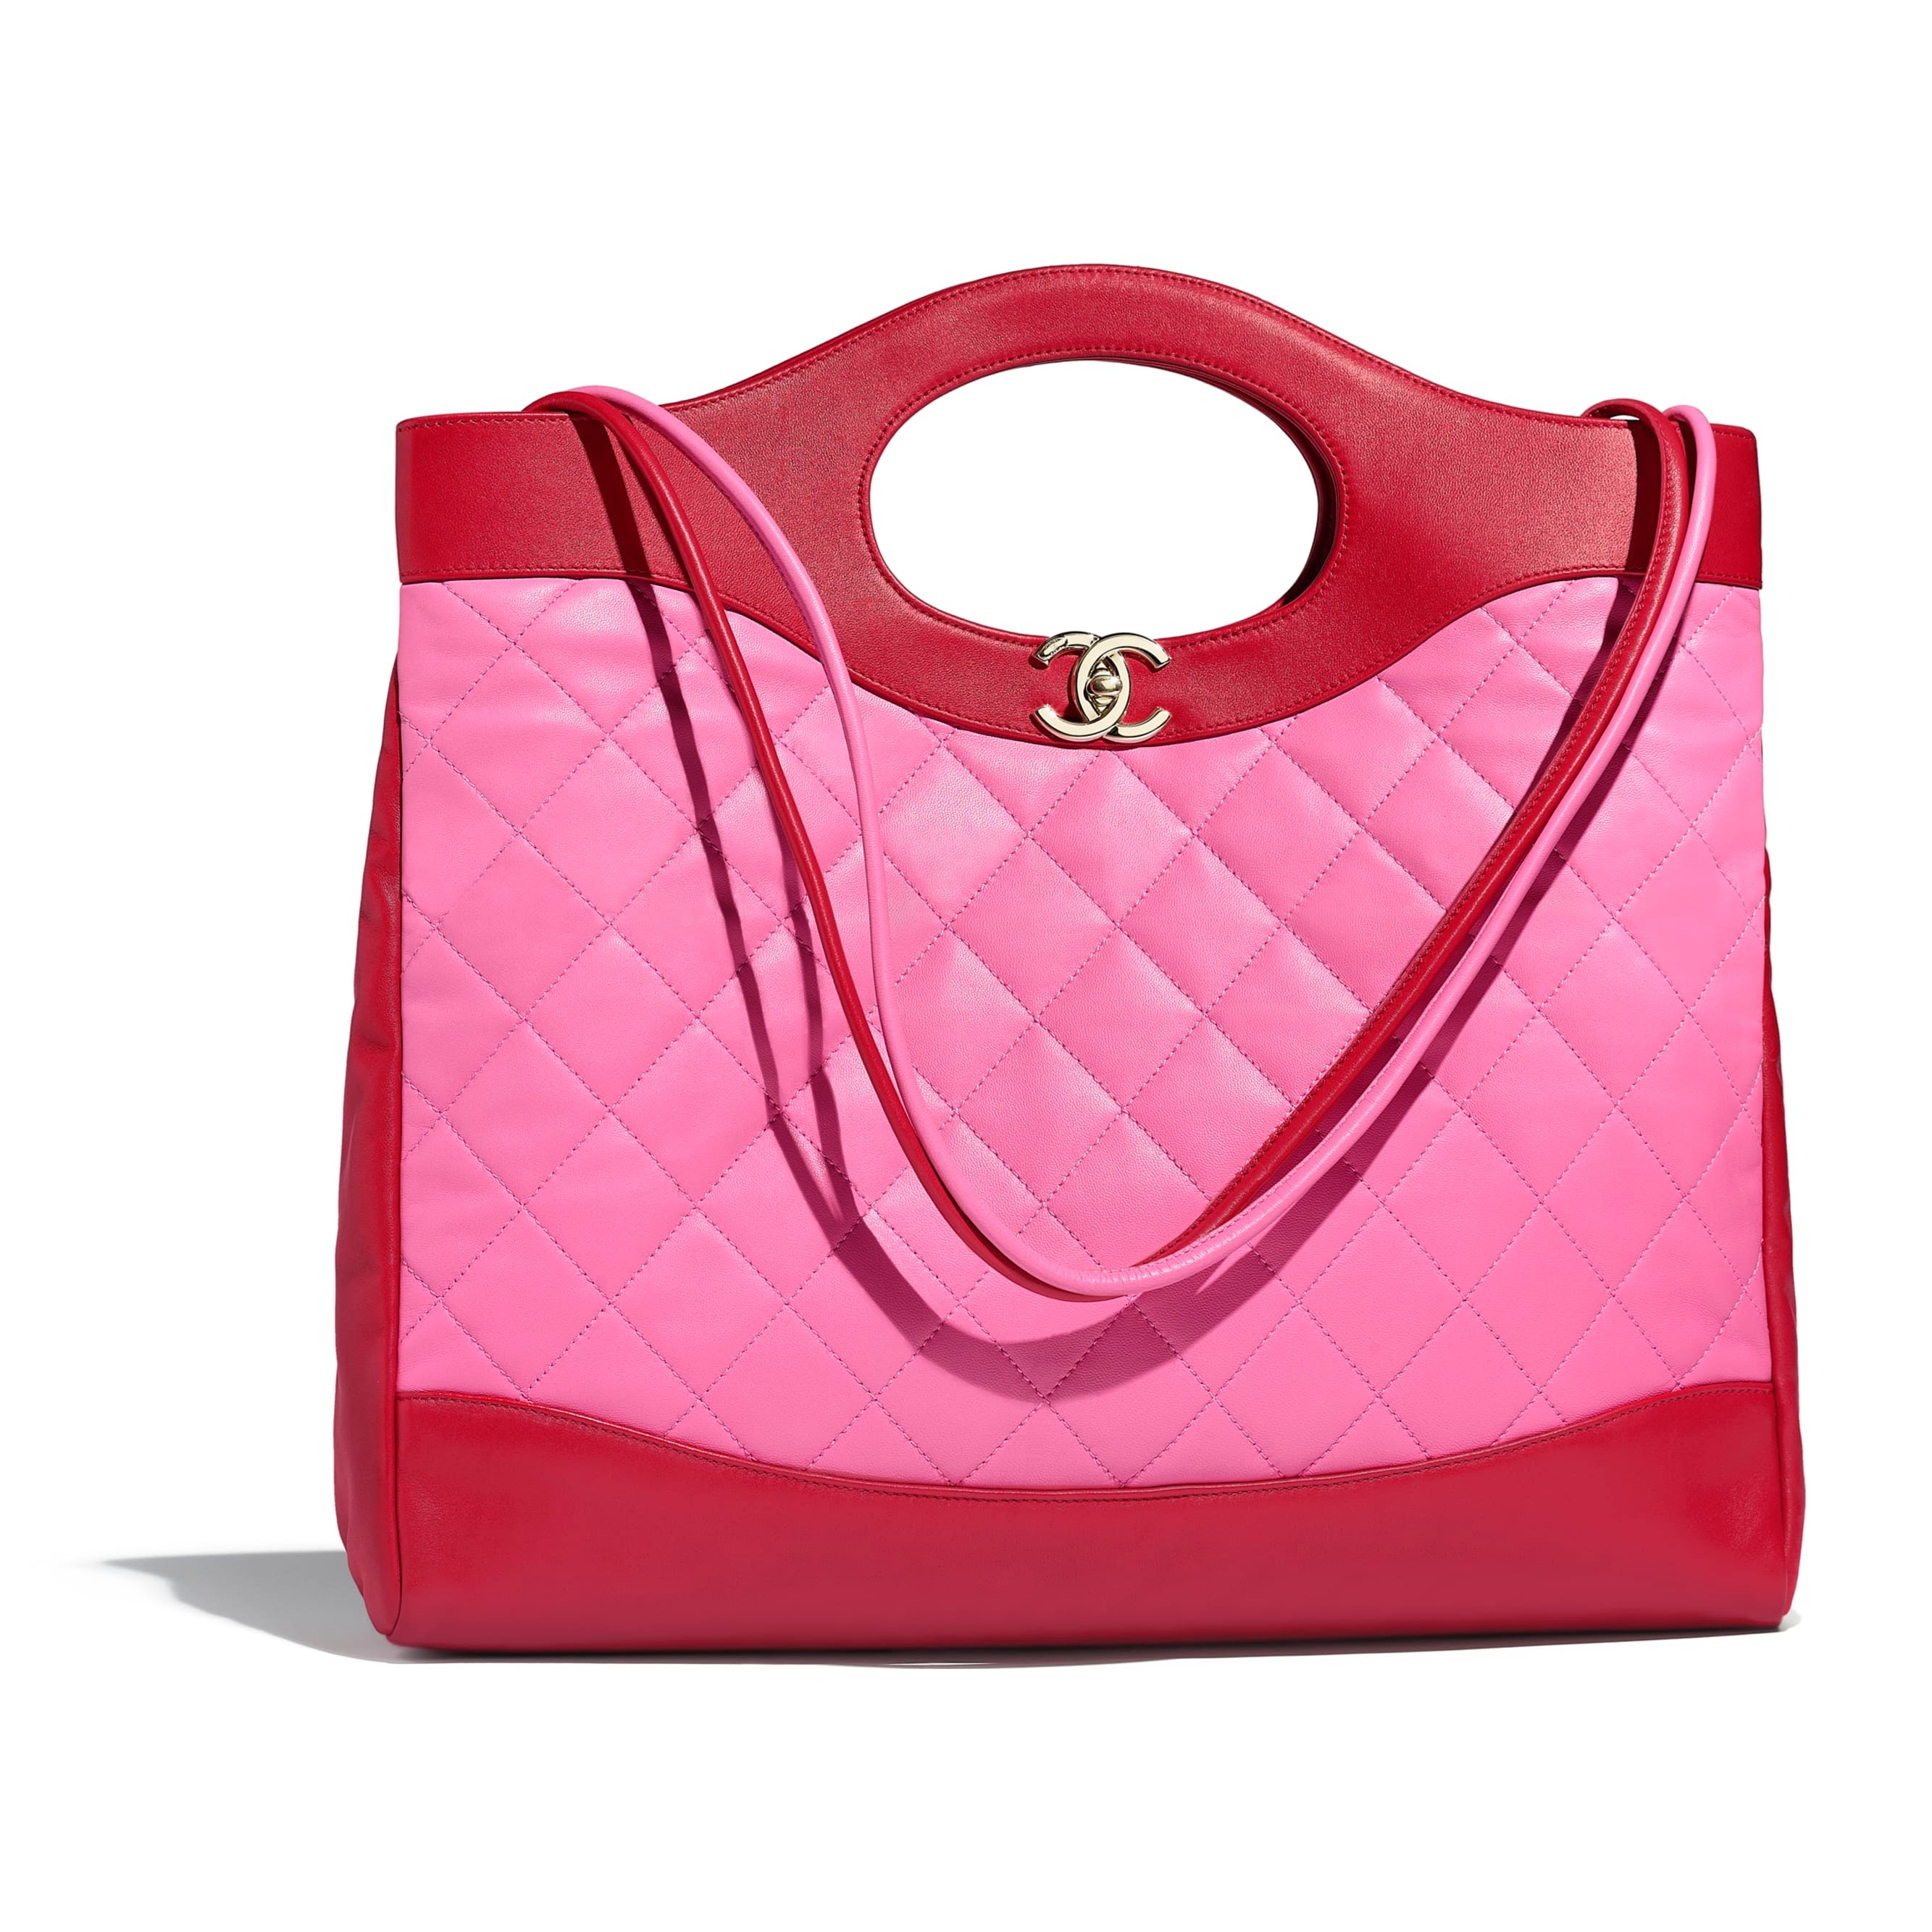 04d281d5d904 Chanel S New Bag Trend For 2019 Is Here And It S Extra